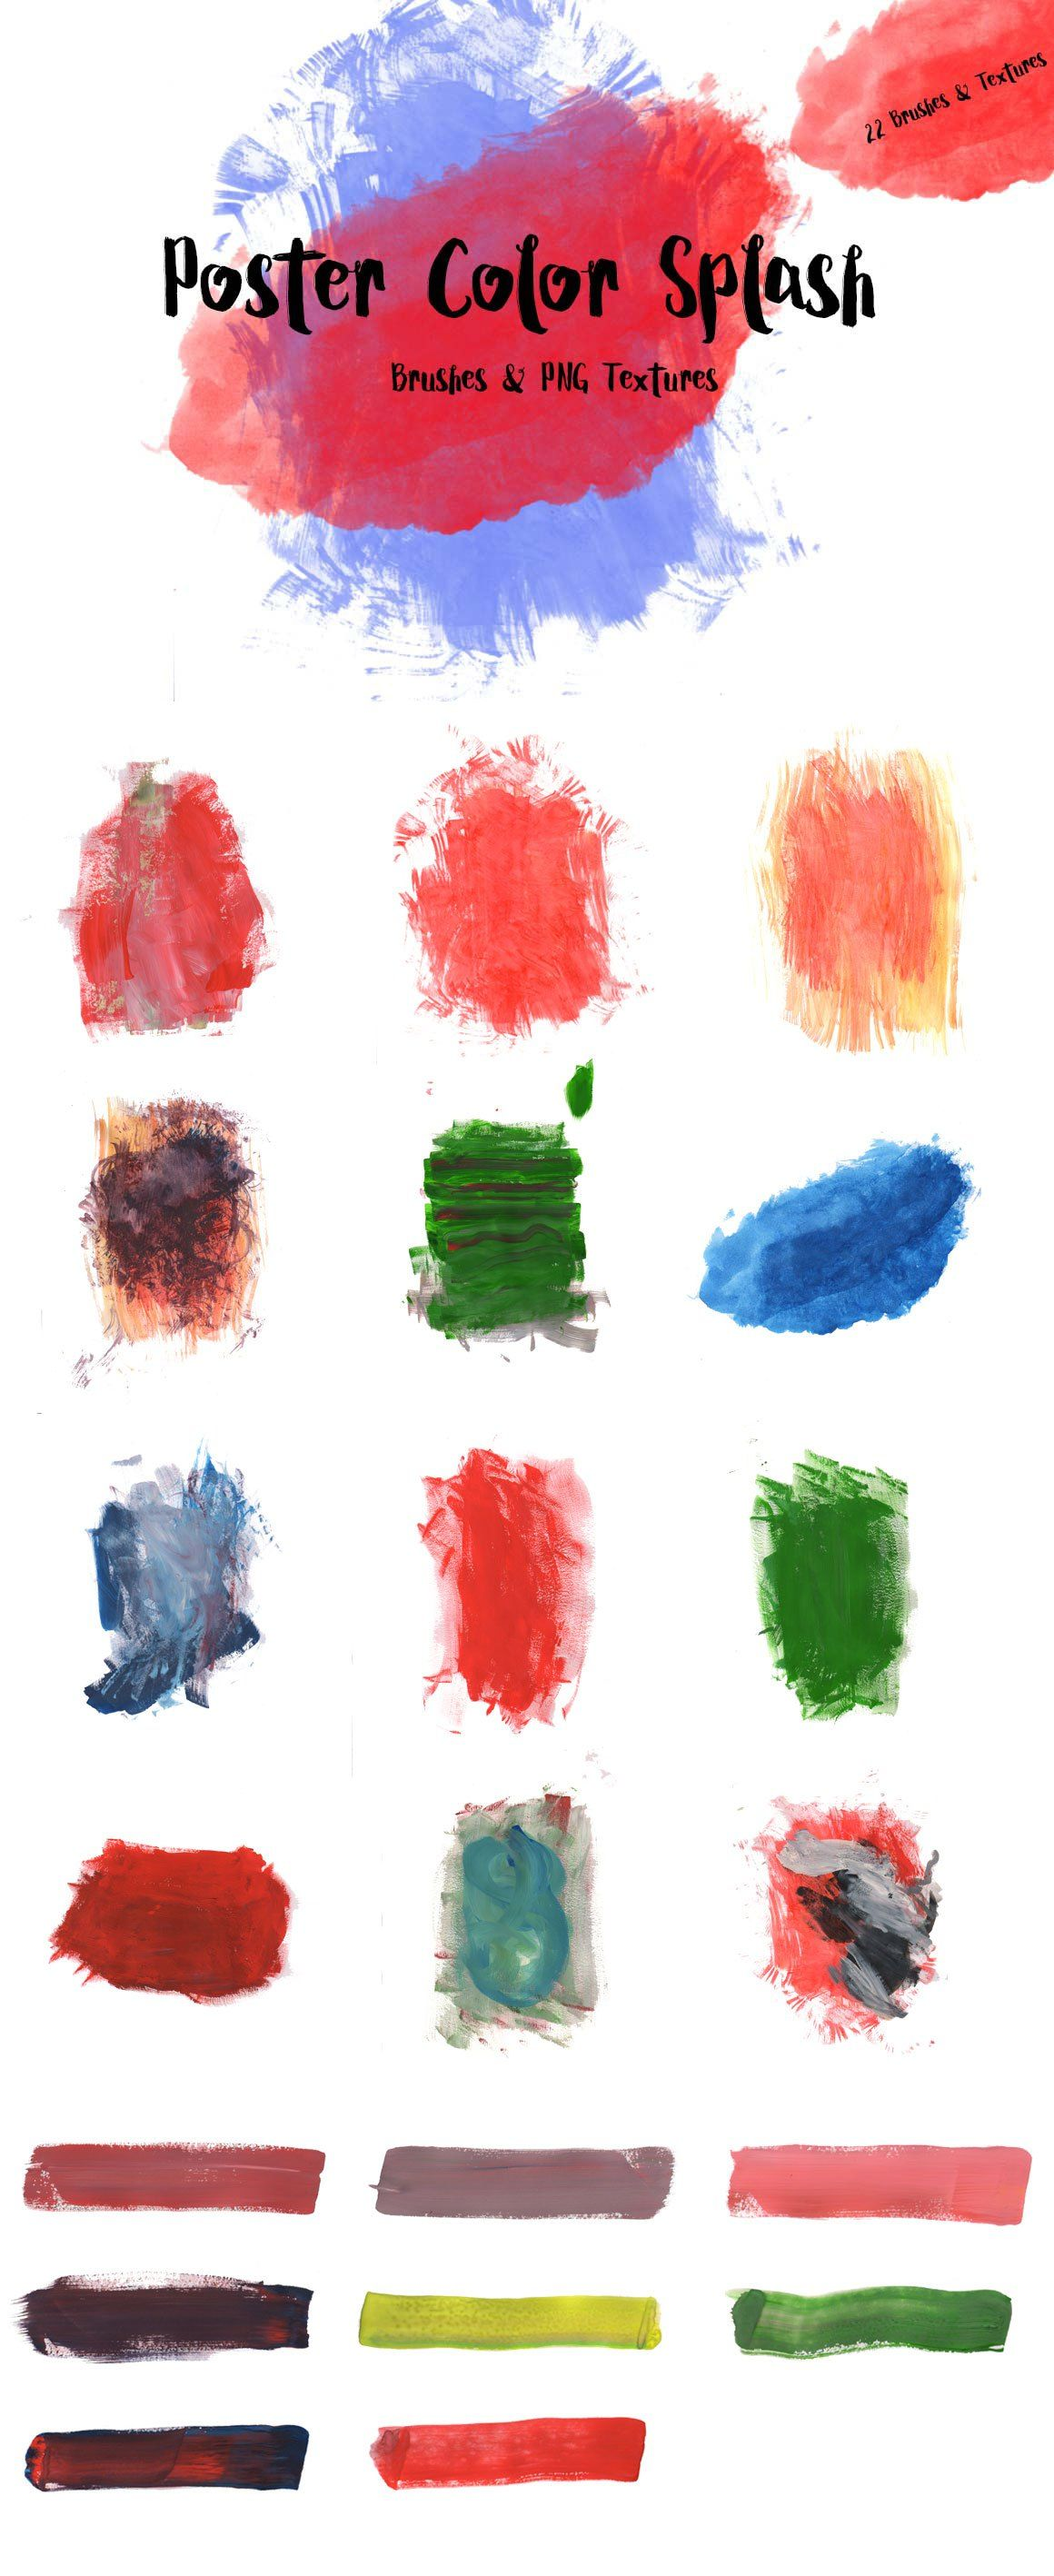 Poster Color Splash Brushes & Textures For $5